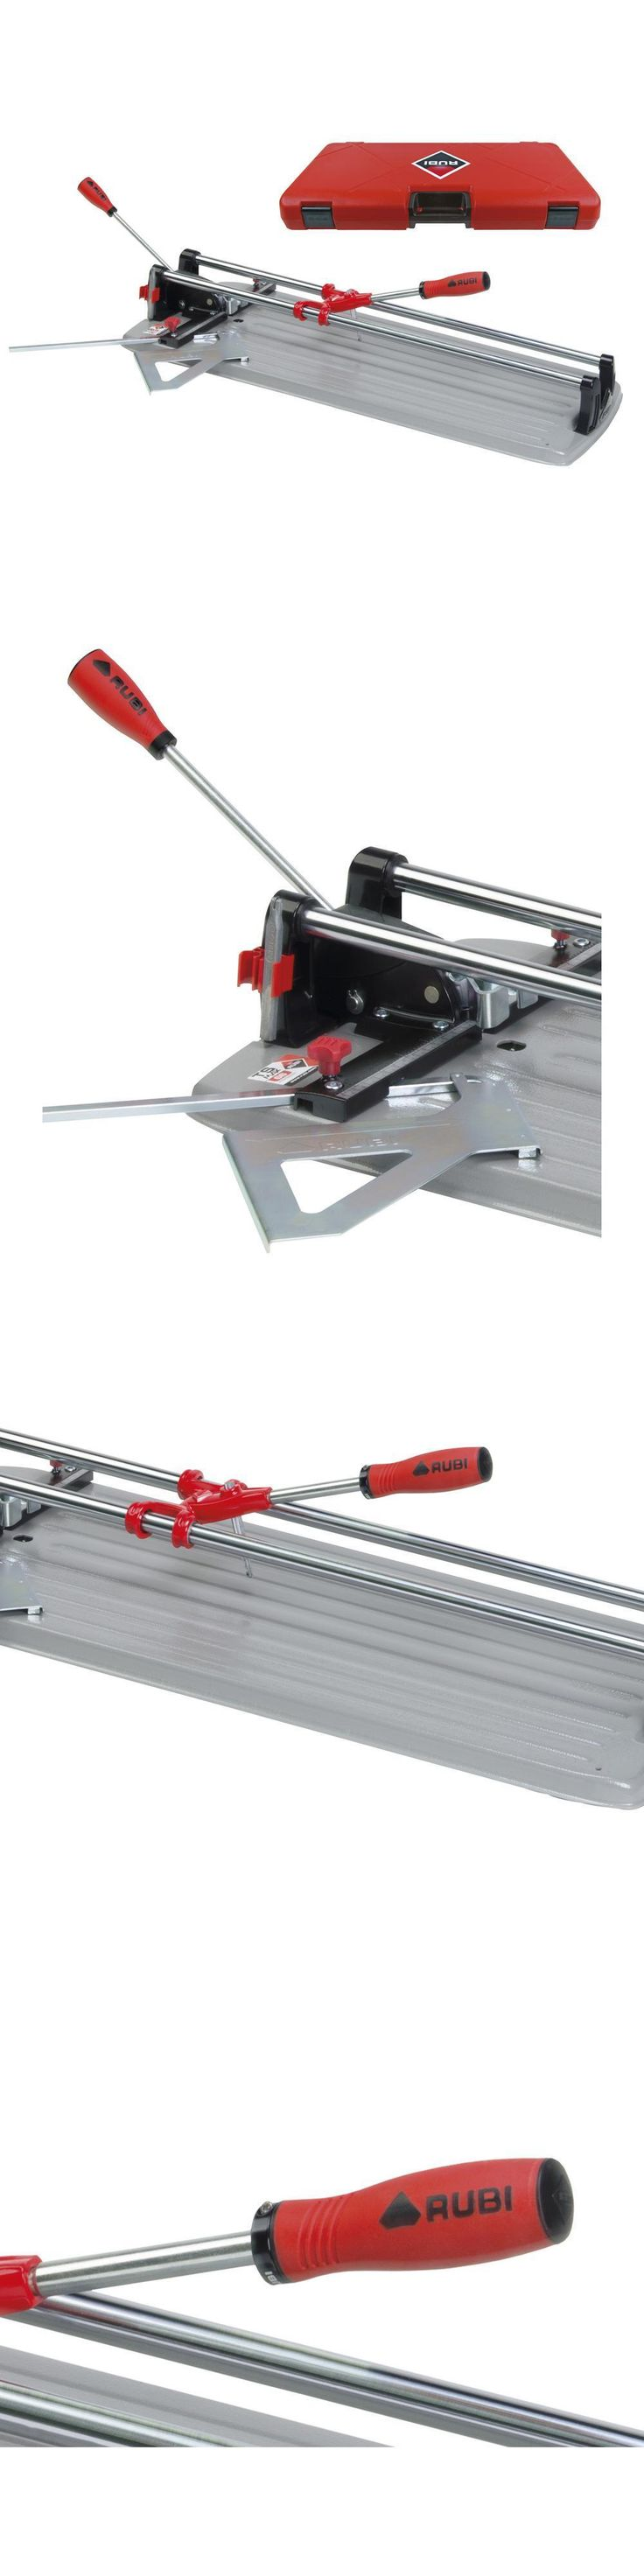 Other Flooring 20604: Rubi Tools Ts-66 Max 26 Professional Tile Cutter Ref.18974 -> BUY IT NOW ONLY: $425 on eBay!